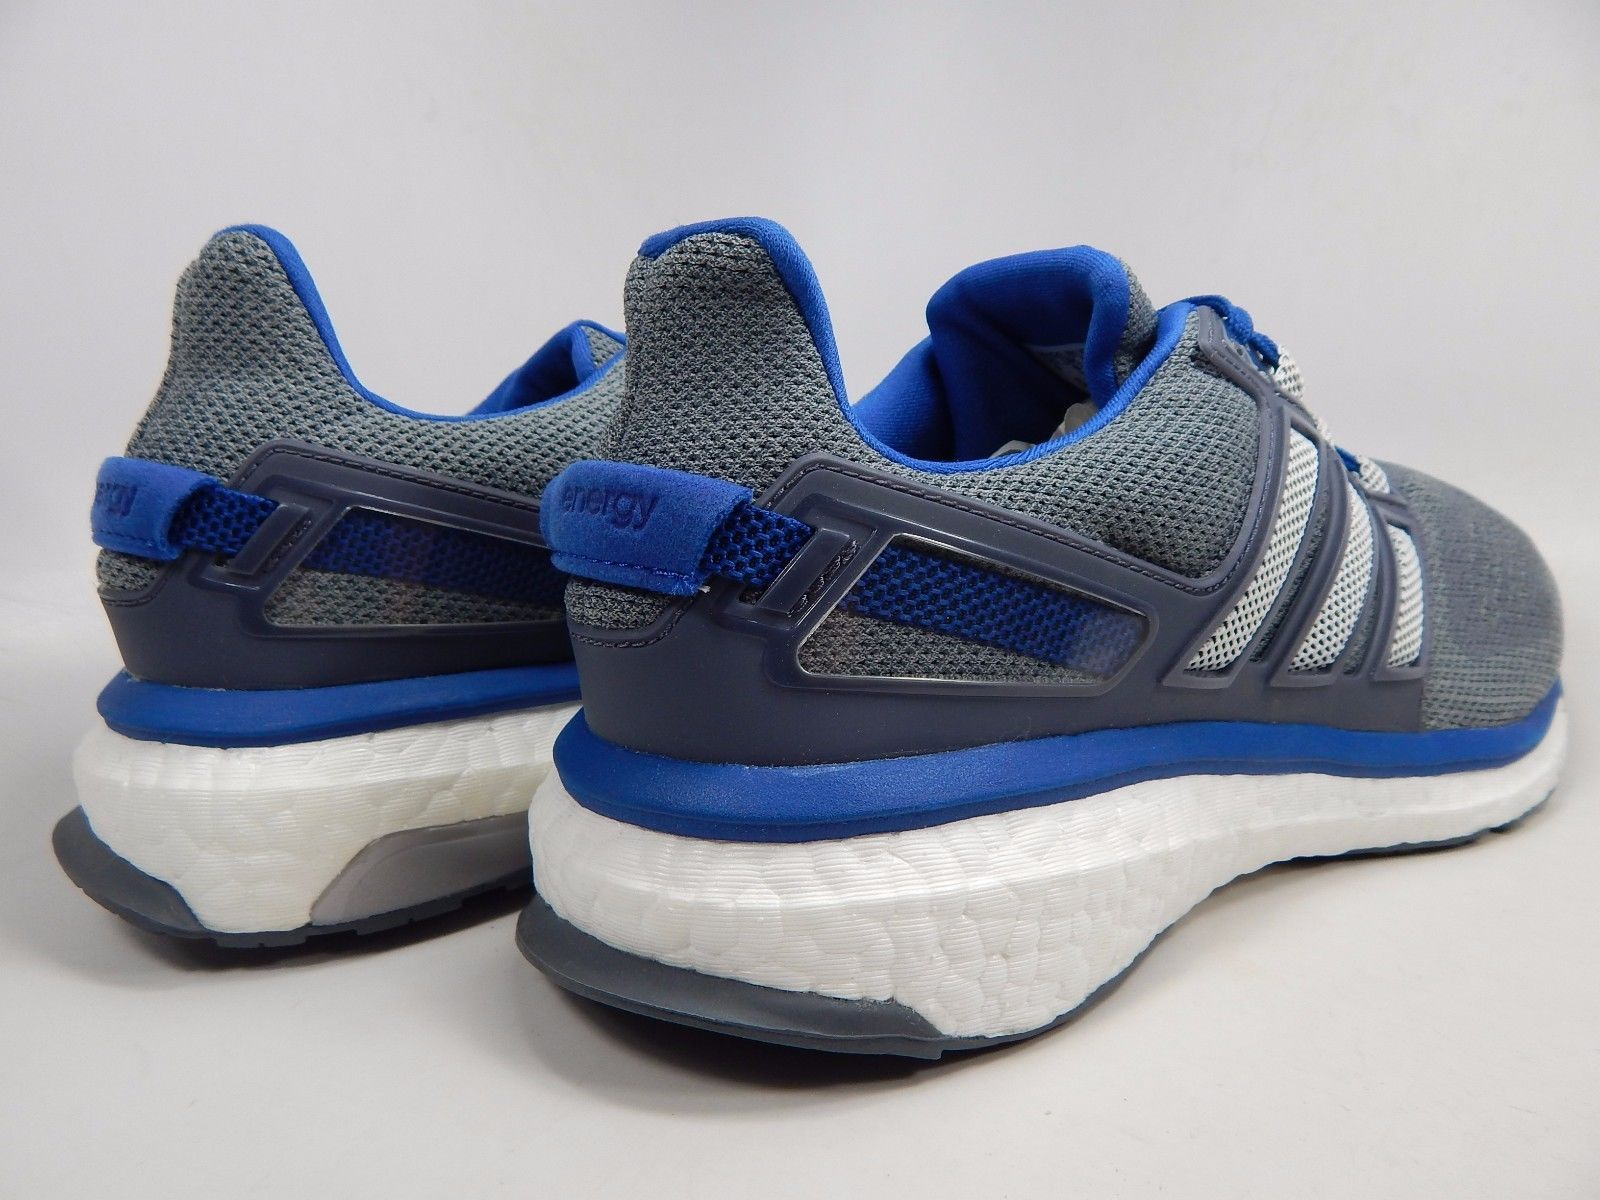 MISMATCH Adidas Energy Boost 3 Men's Running Shoes Size 8.5 Left & 9 Right